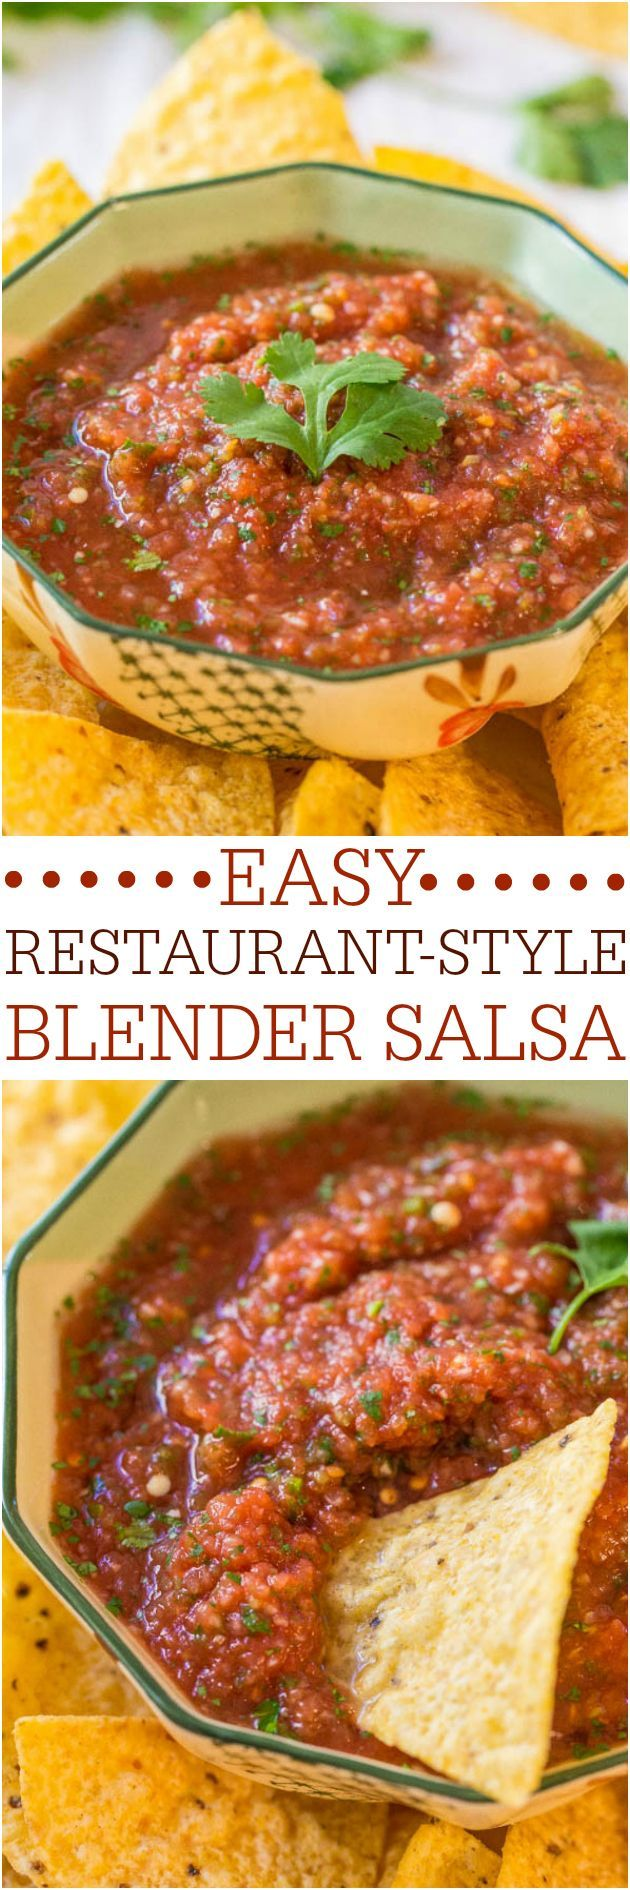 Easy Restaurant-Style Blender Salsa - Make your own salsa in minutes! Fast, easy, goofproof and tastes 1000x better than anything you'd buy! Great for parties, #GameDays and #Superbowl !